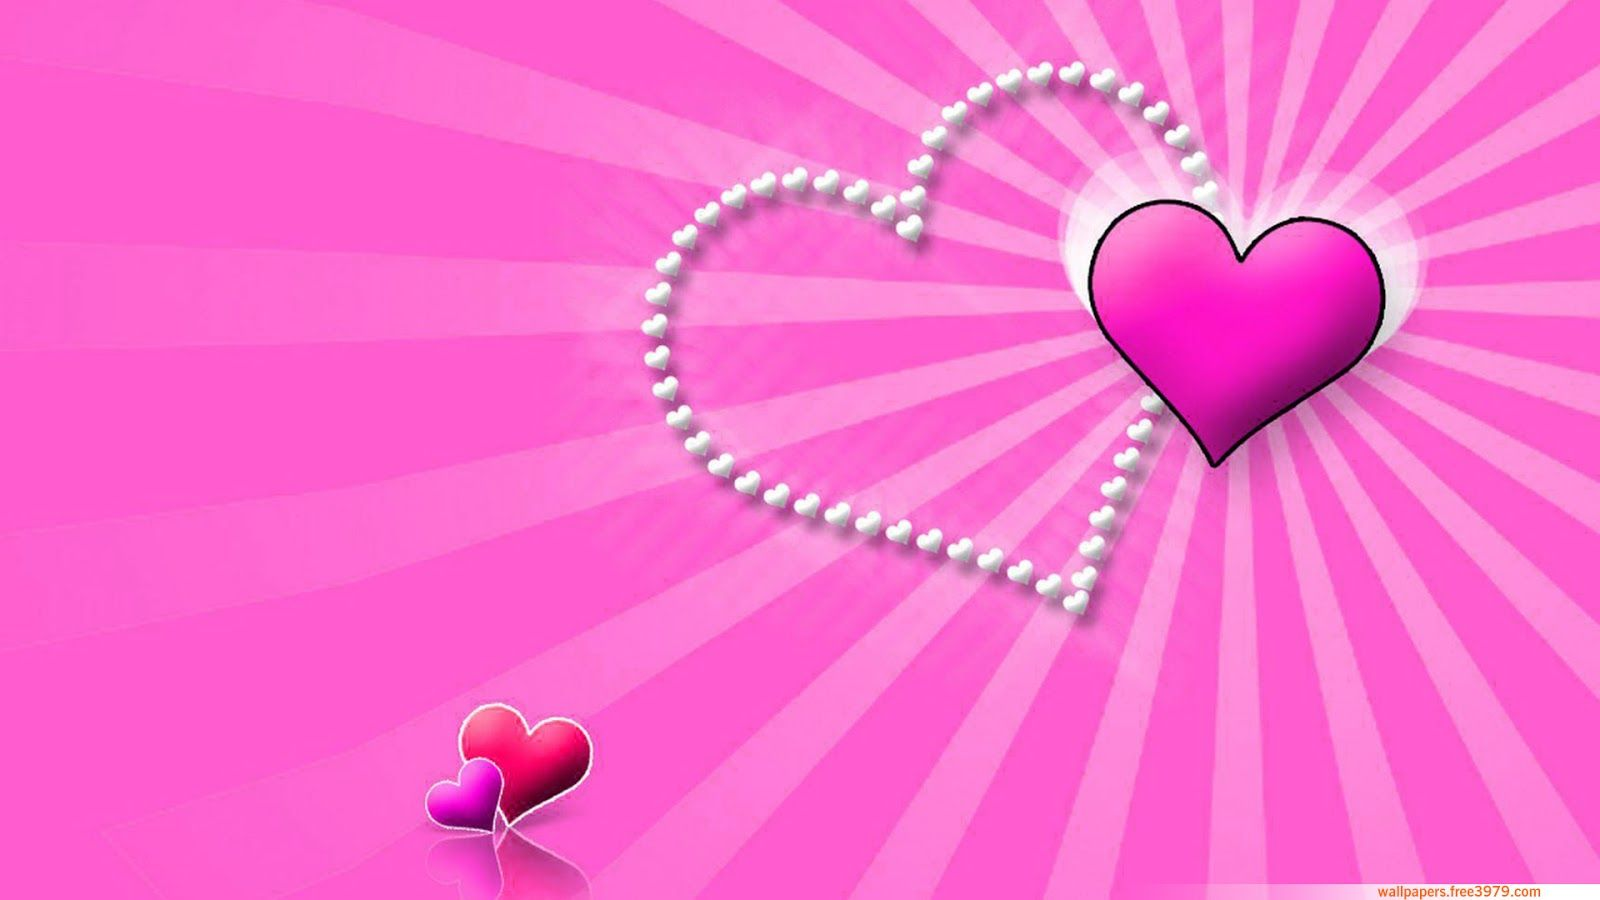 valentine's day hd wallpaper free download